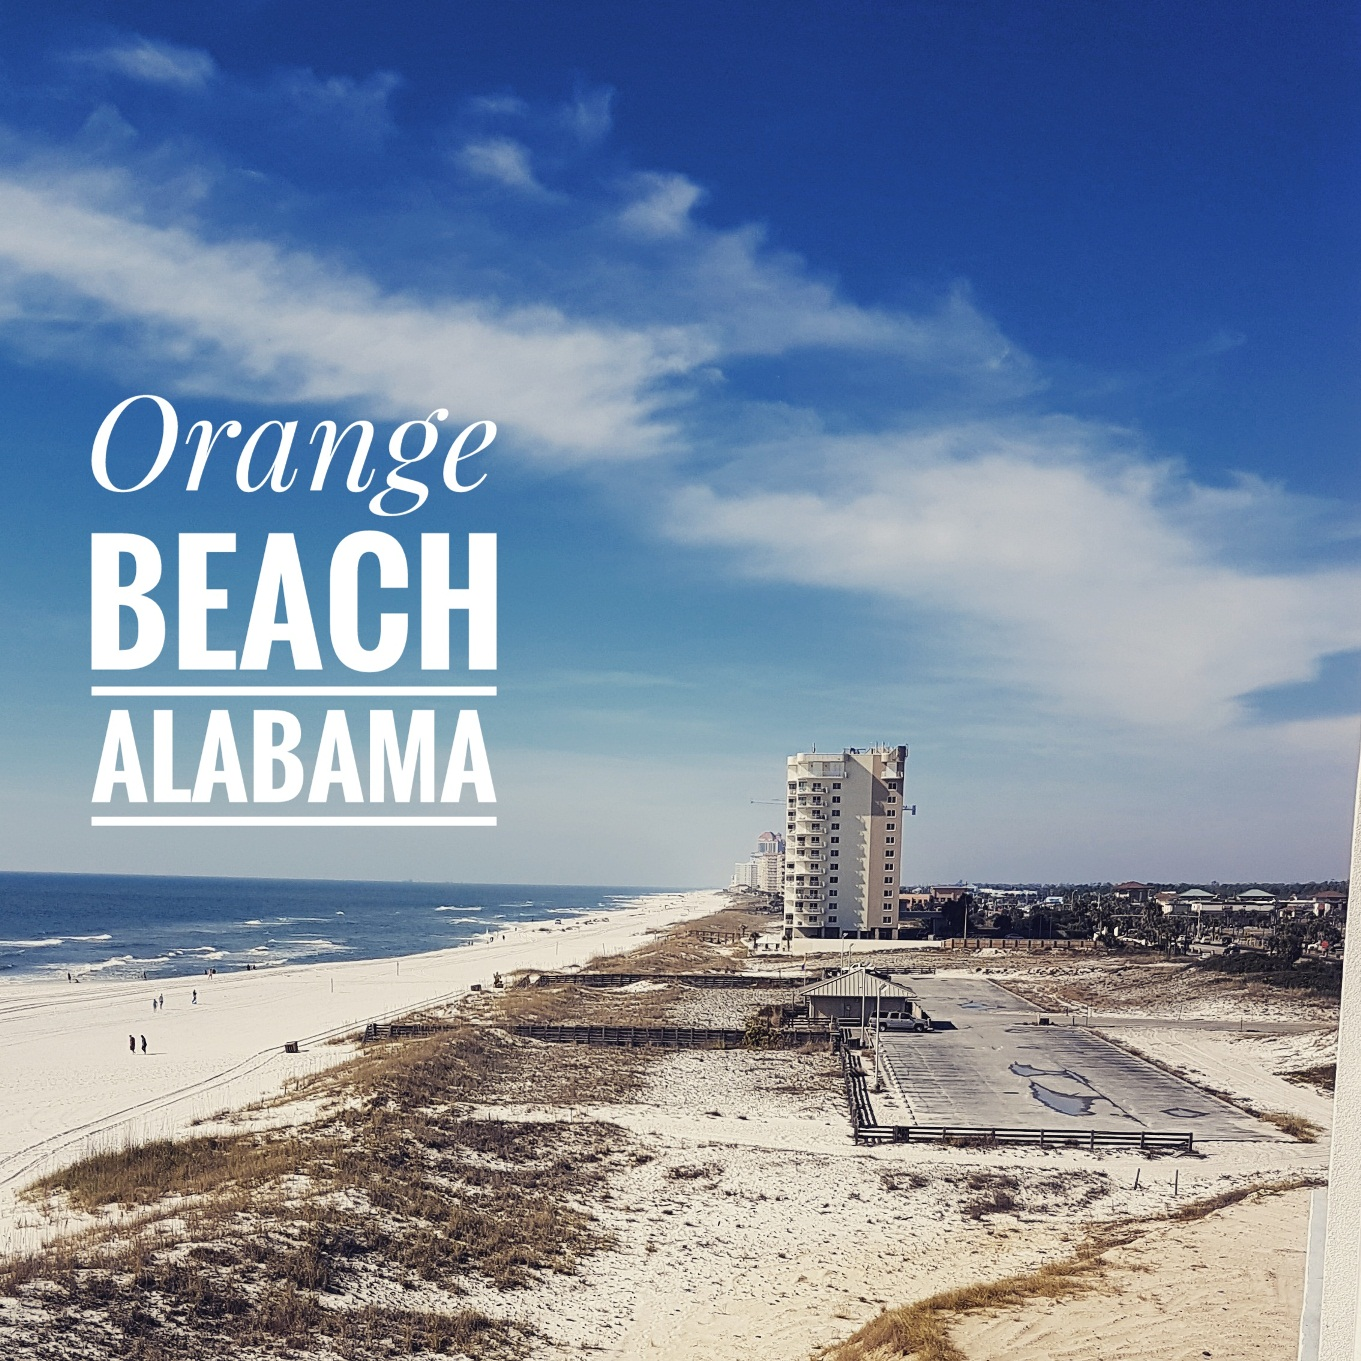 Un paseo por Orange Beach, Alabama (E.U.)